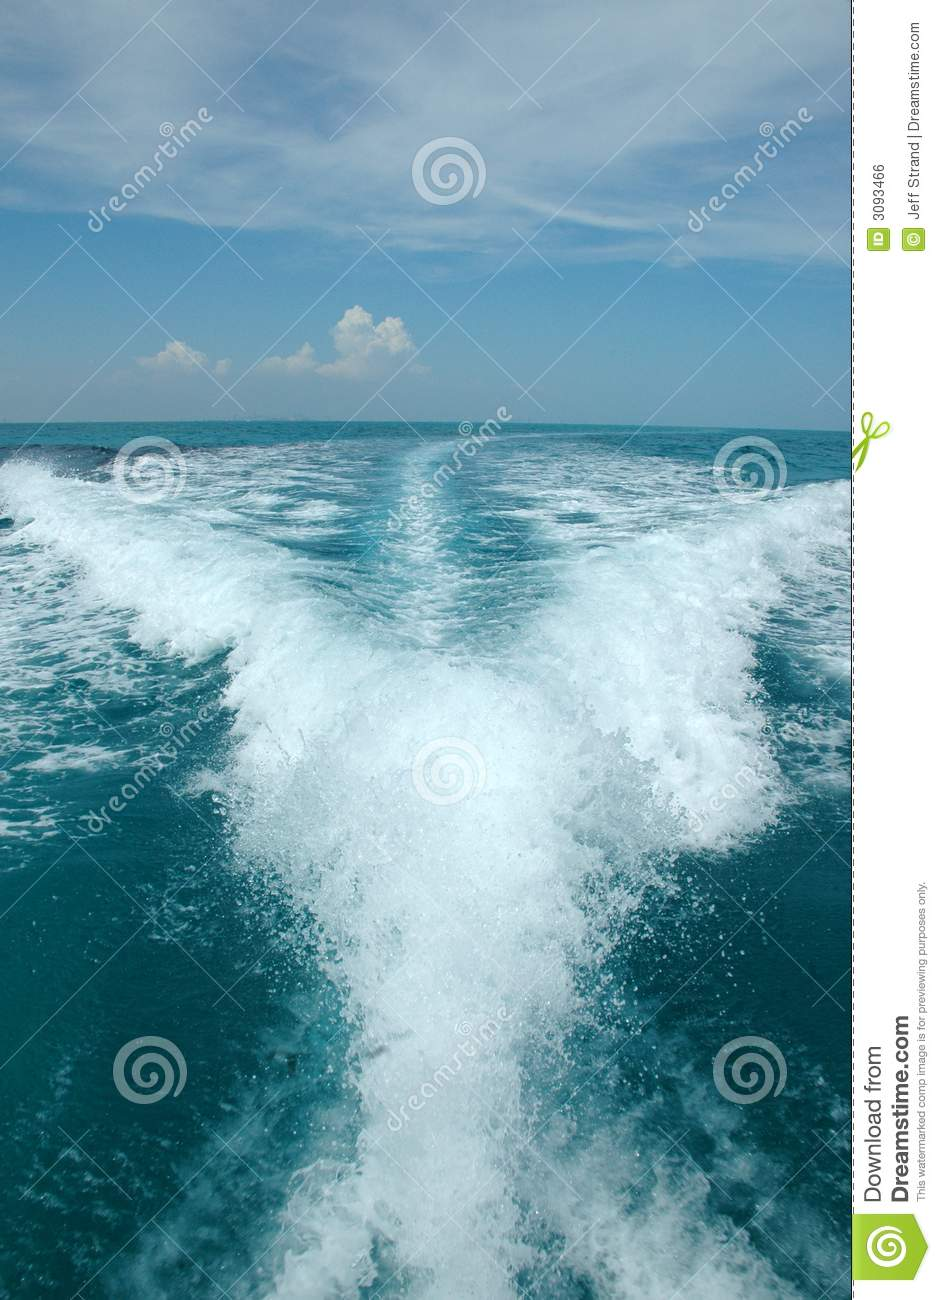 Water Trail Behind Boat Royalty Free Stock Image - Image ...